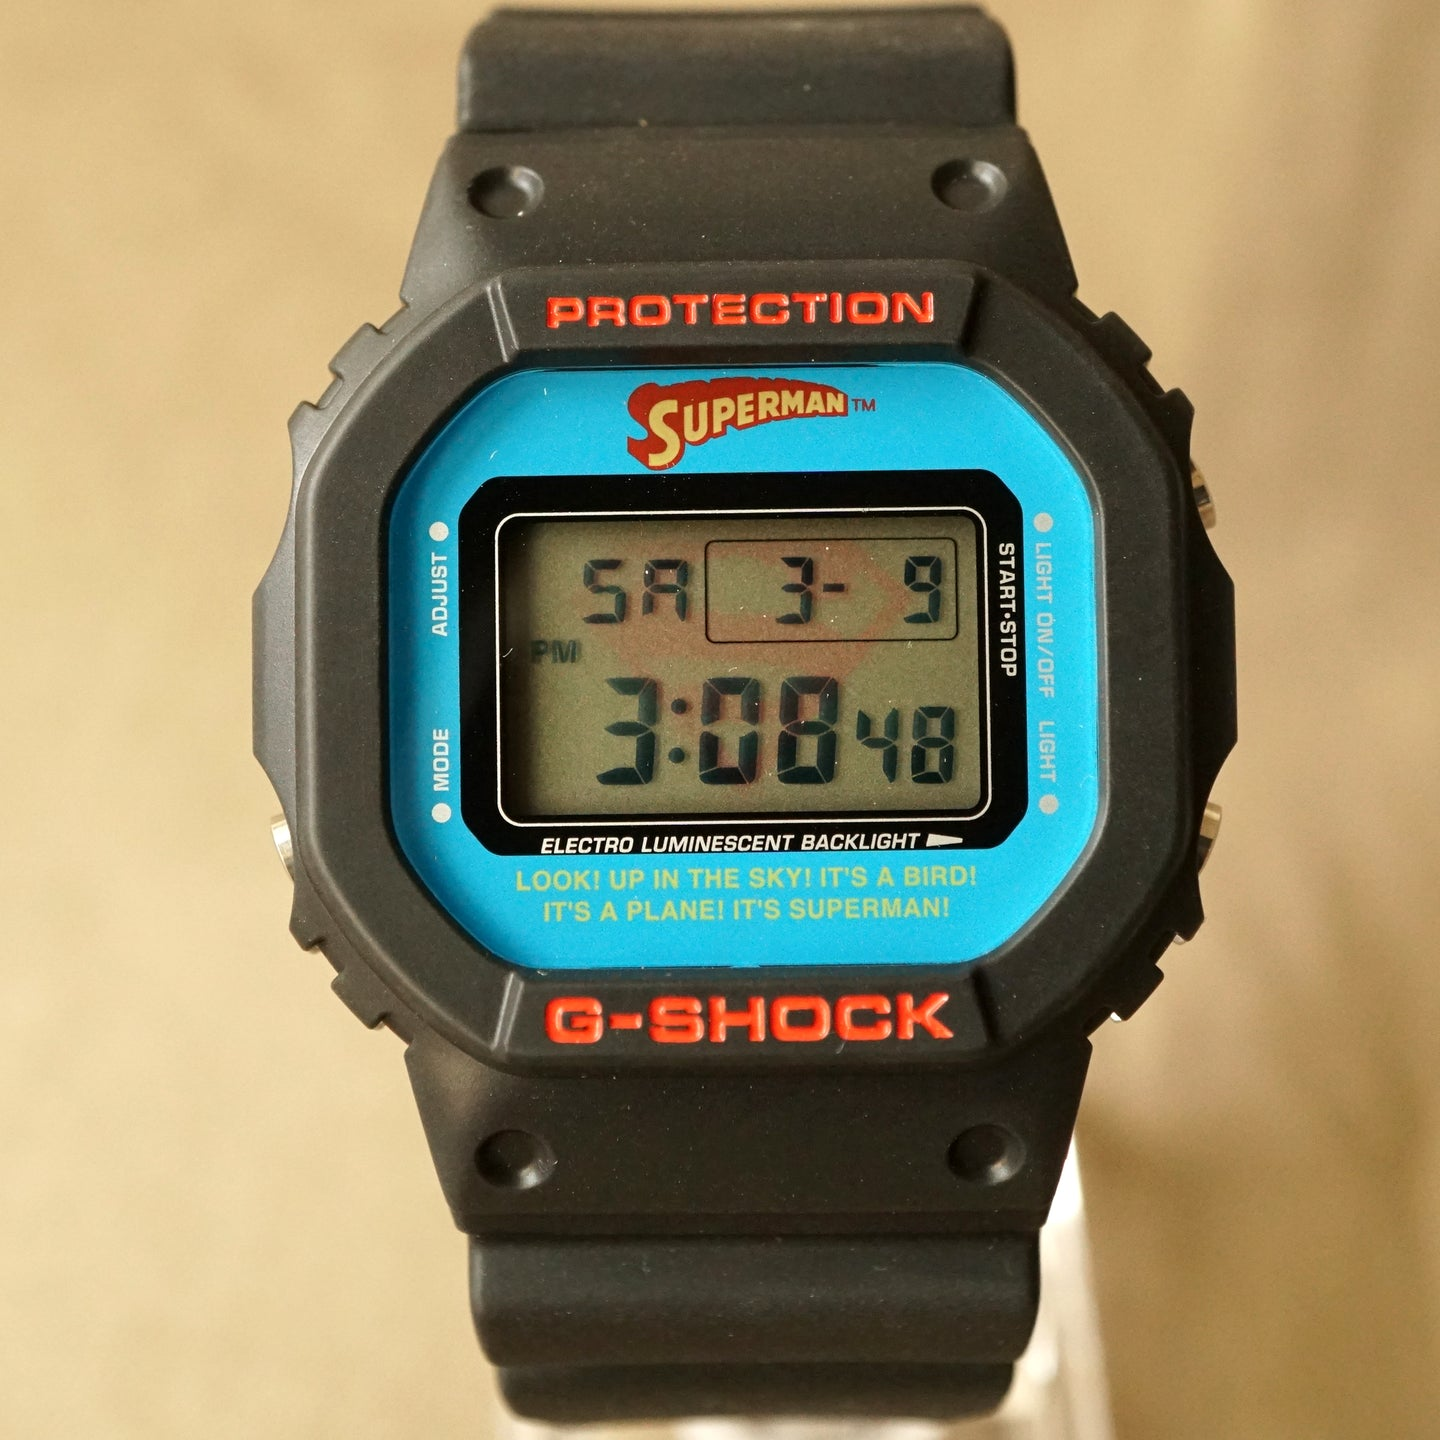 2007 CASIO G-SHOCK DW-5600VTSUP-1TJR DC COMICS EDITION